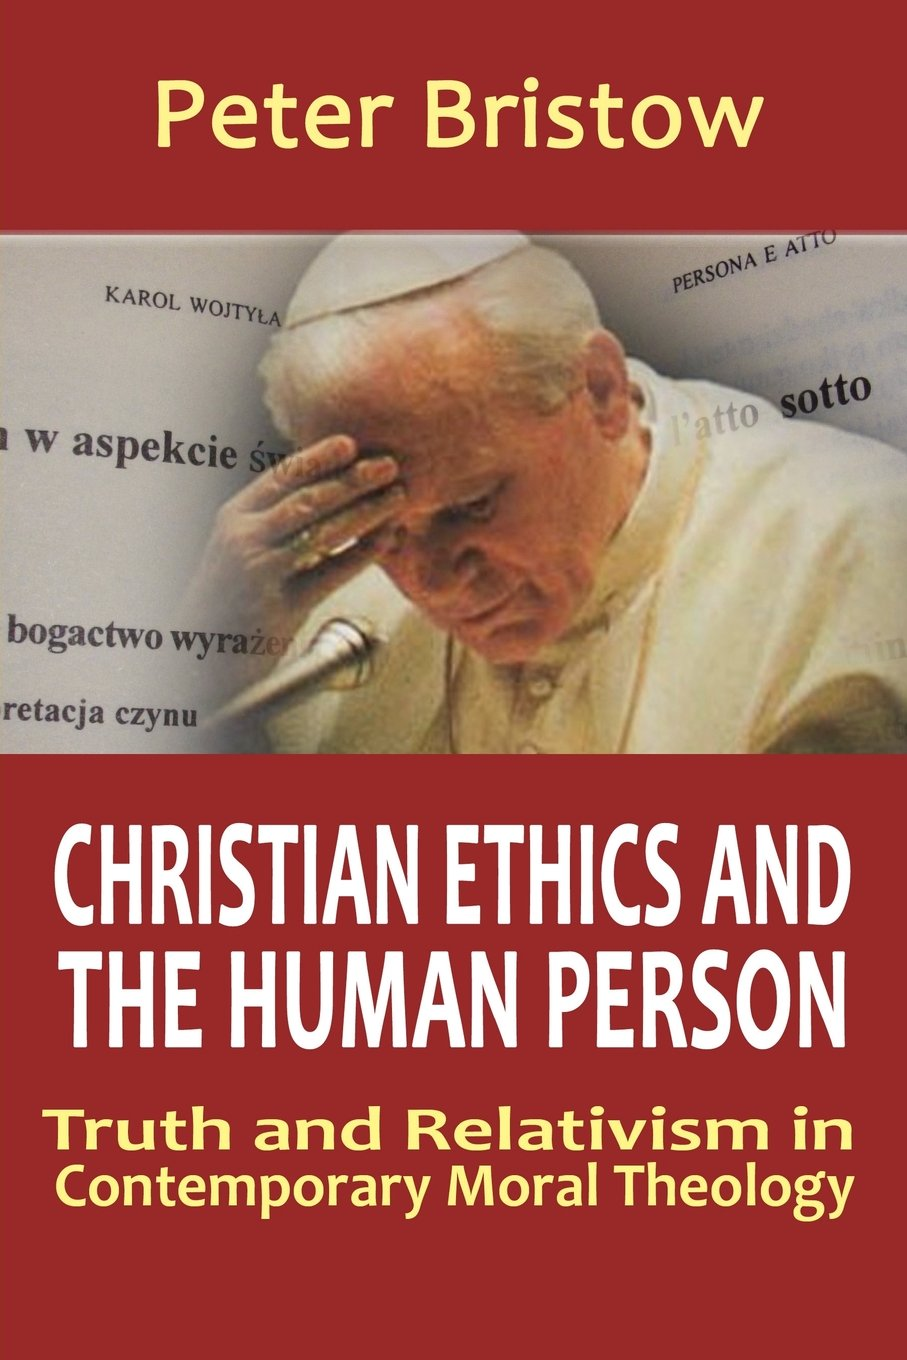 Christian Ethics and the Human Person. Truth and Relativism in Contemporary Moral Theology pdf